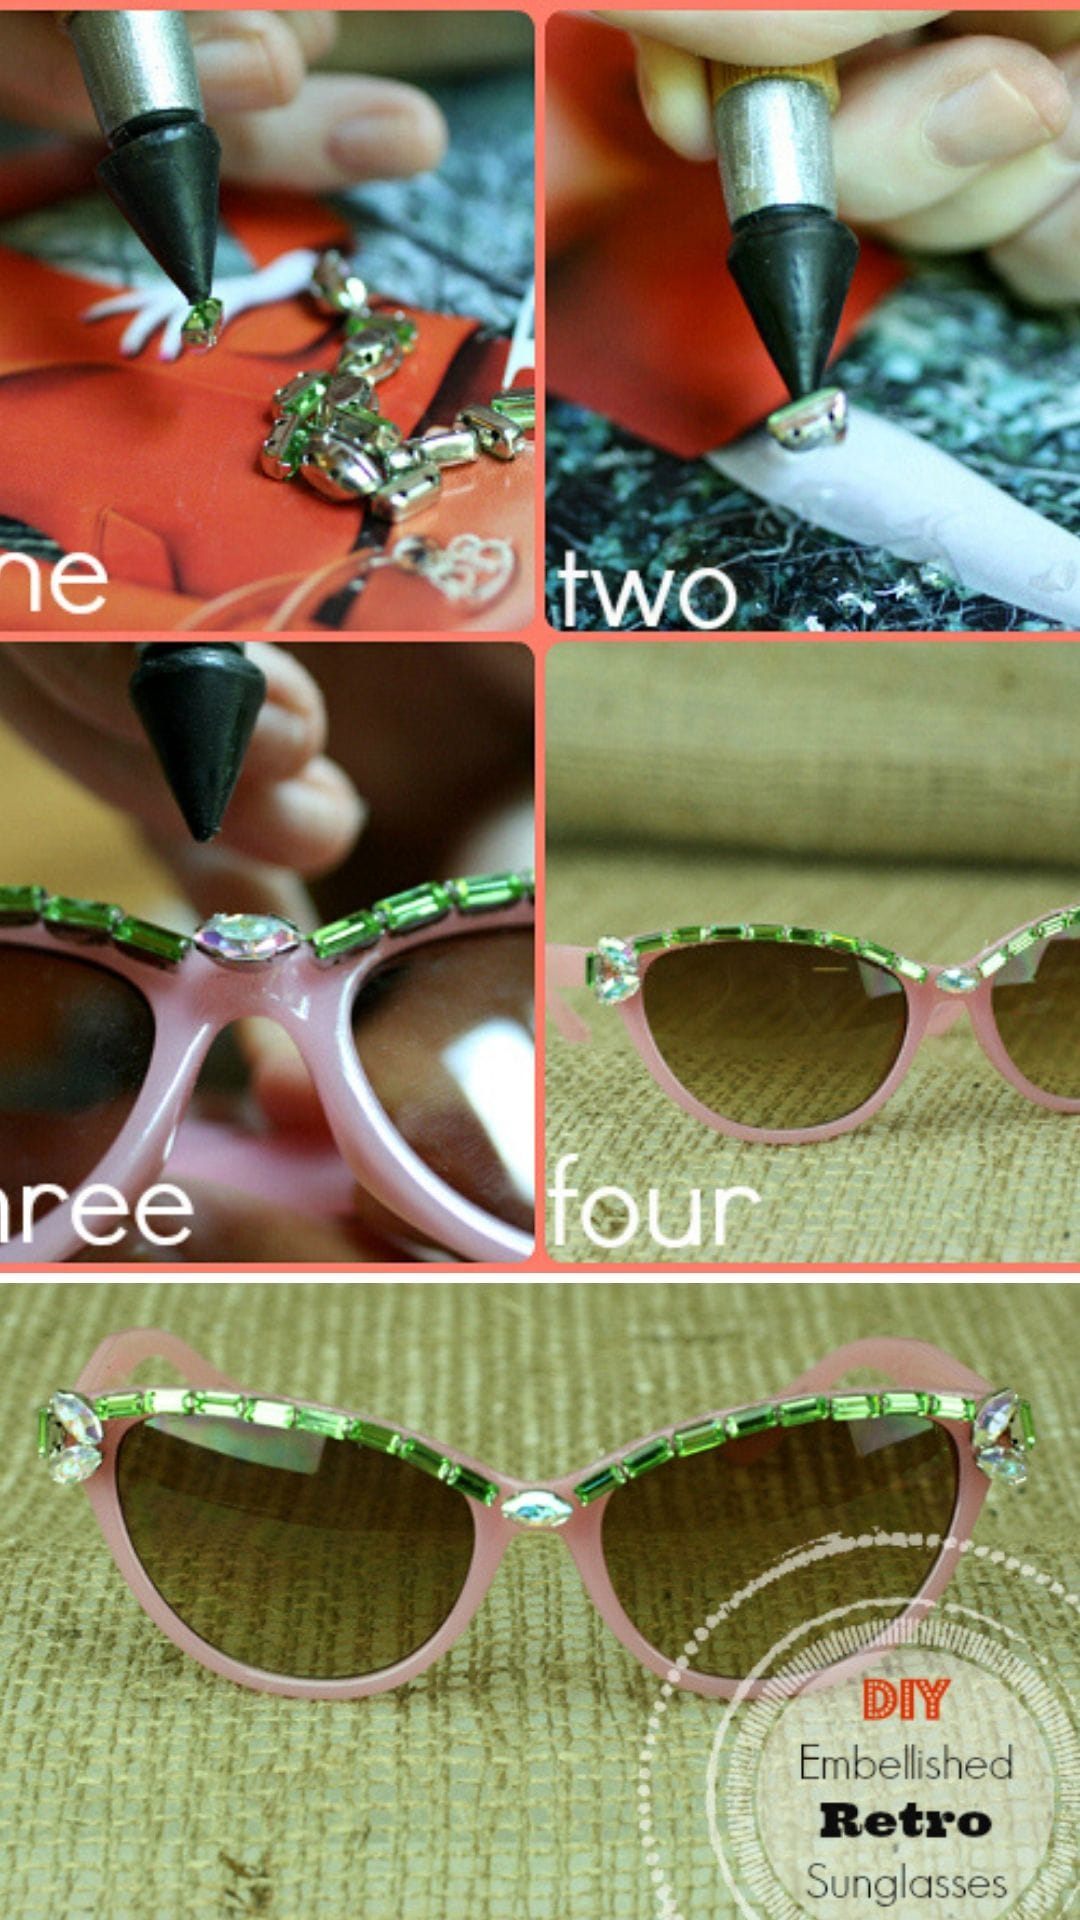 DIY Embellished Retro Sunglasses